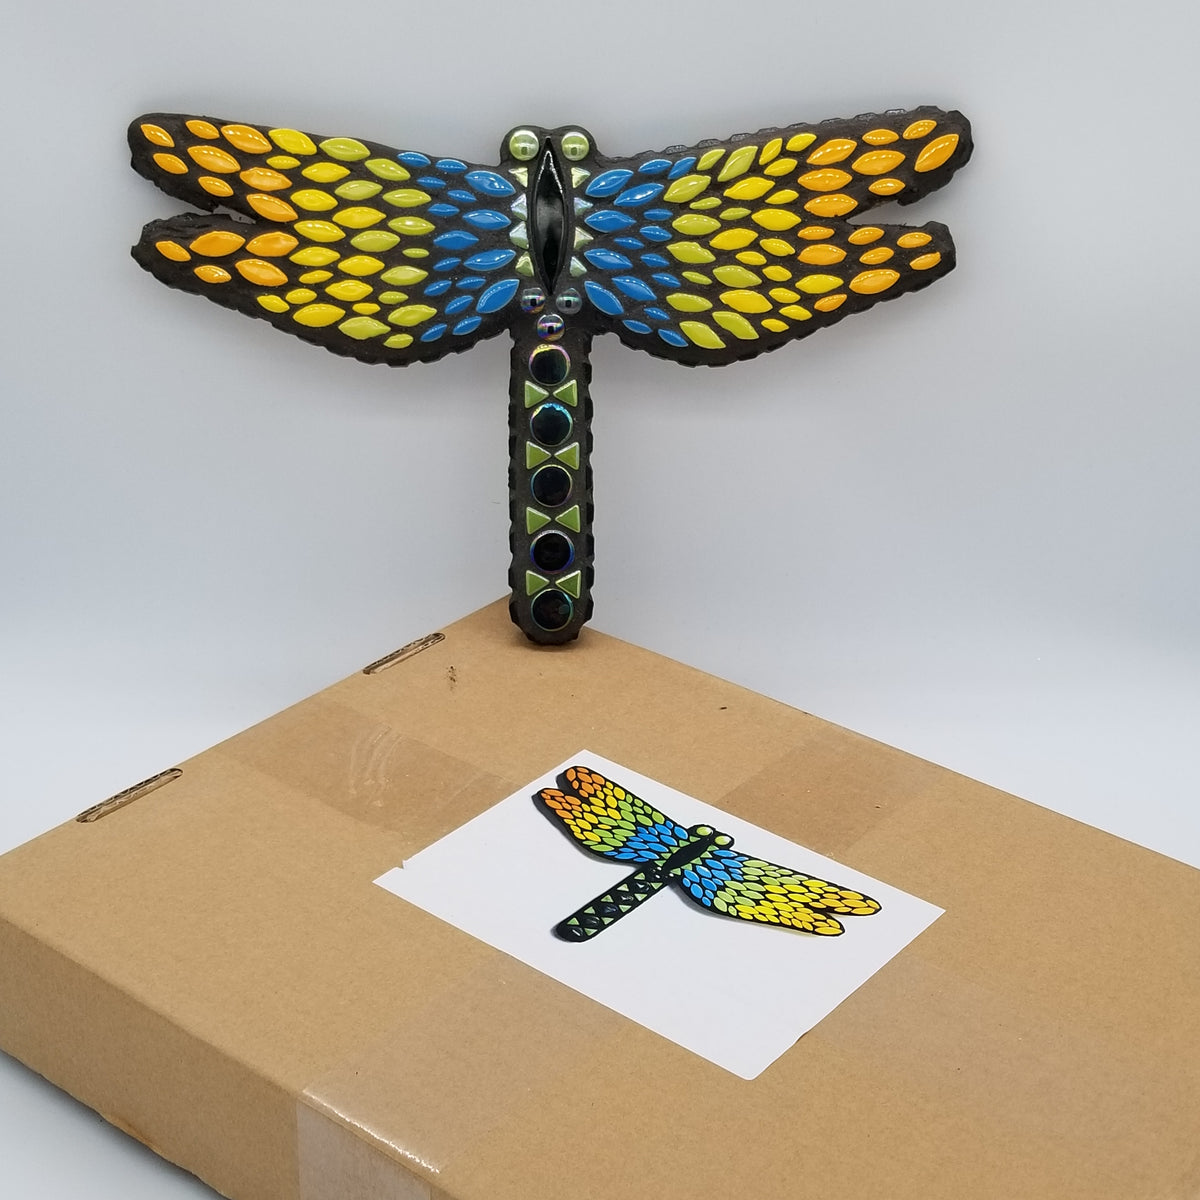 "Dragonfly 8"" DIY Kit - The Artsy Soul"